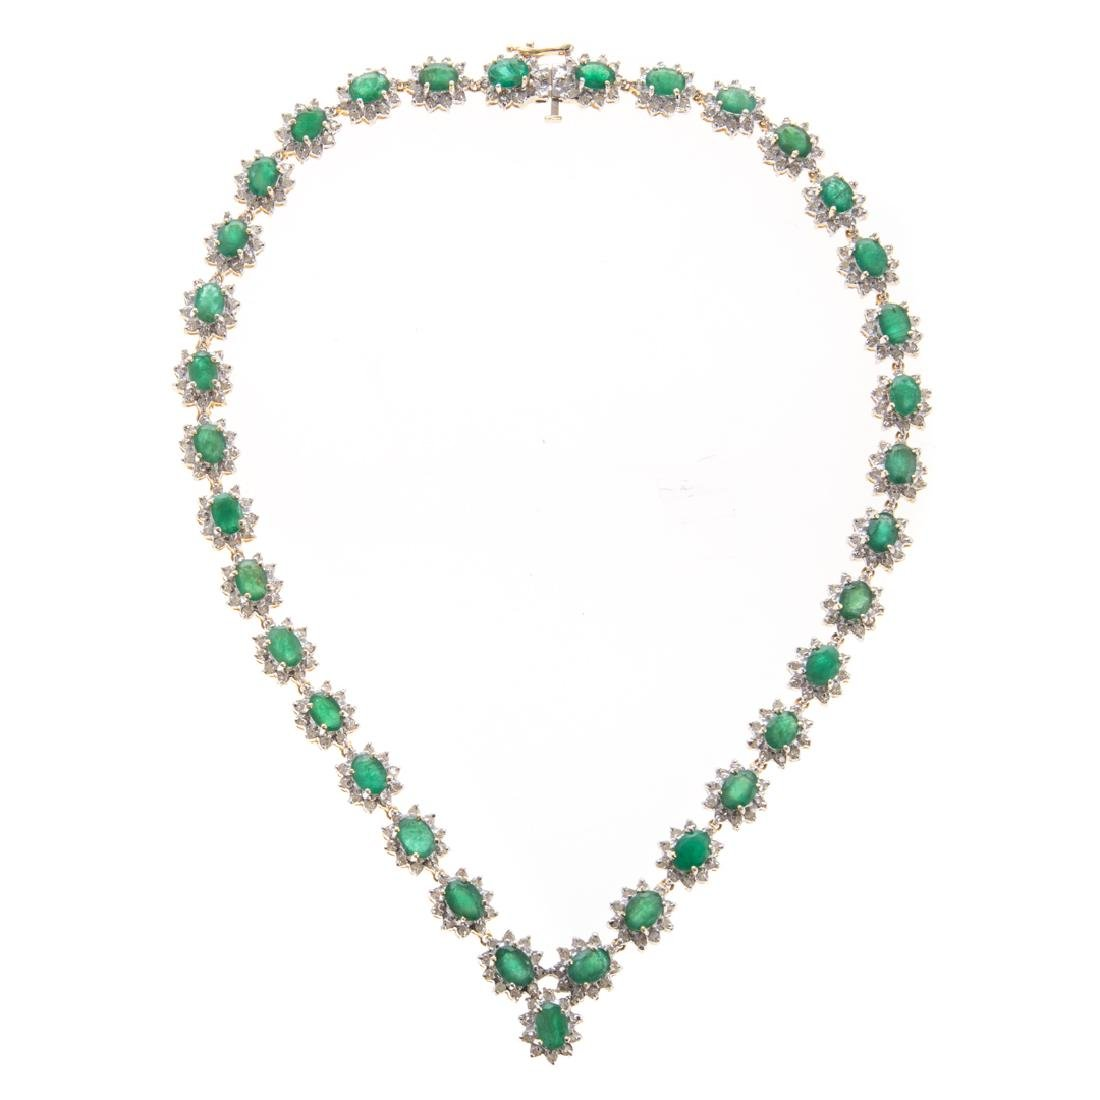 A Lady's Emerald & Diamond Necklace in 14K